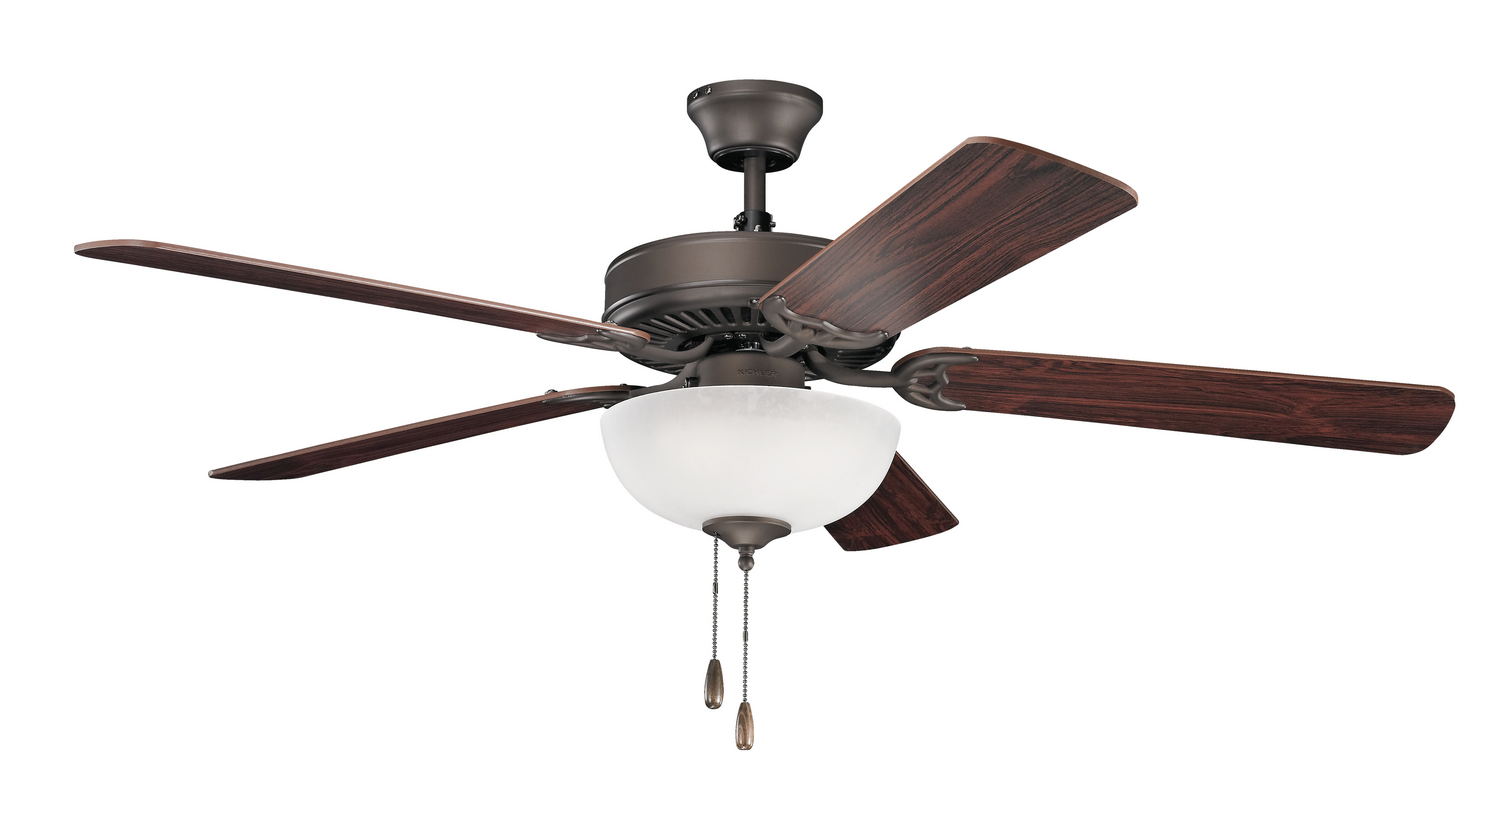 52 inchCeiling Fan from the Basics collection by Kichler 403SNB